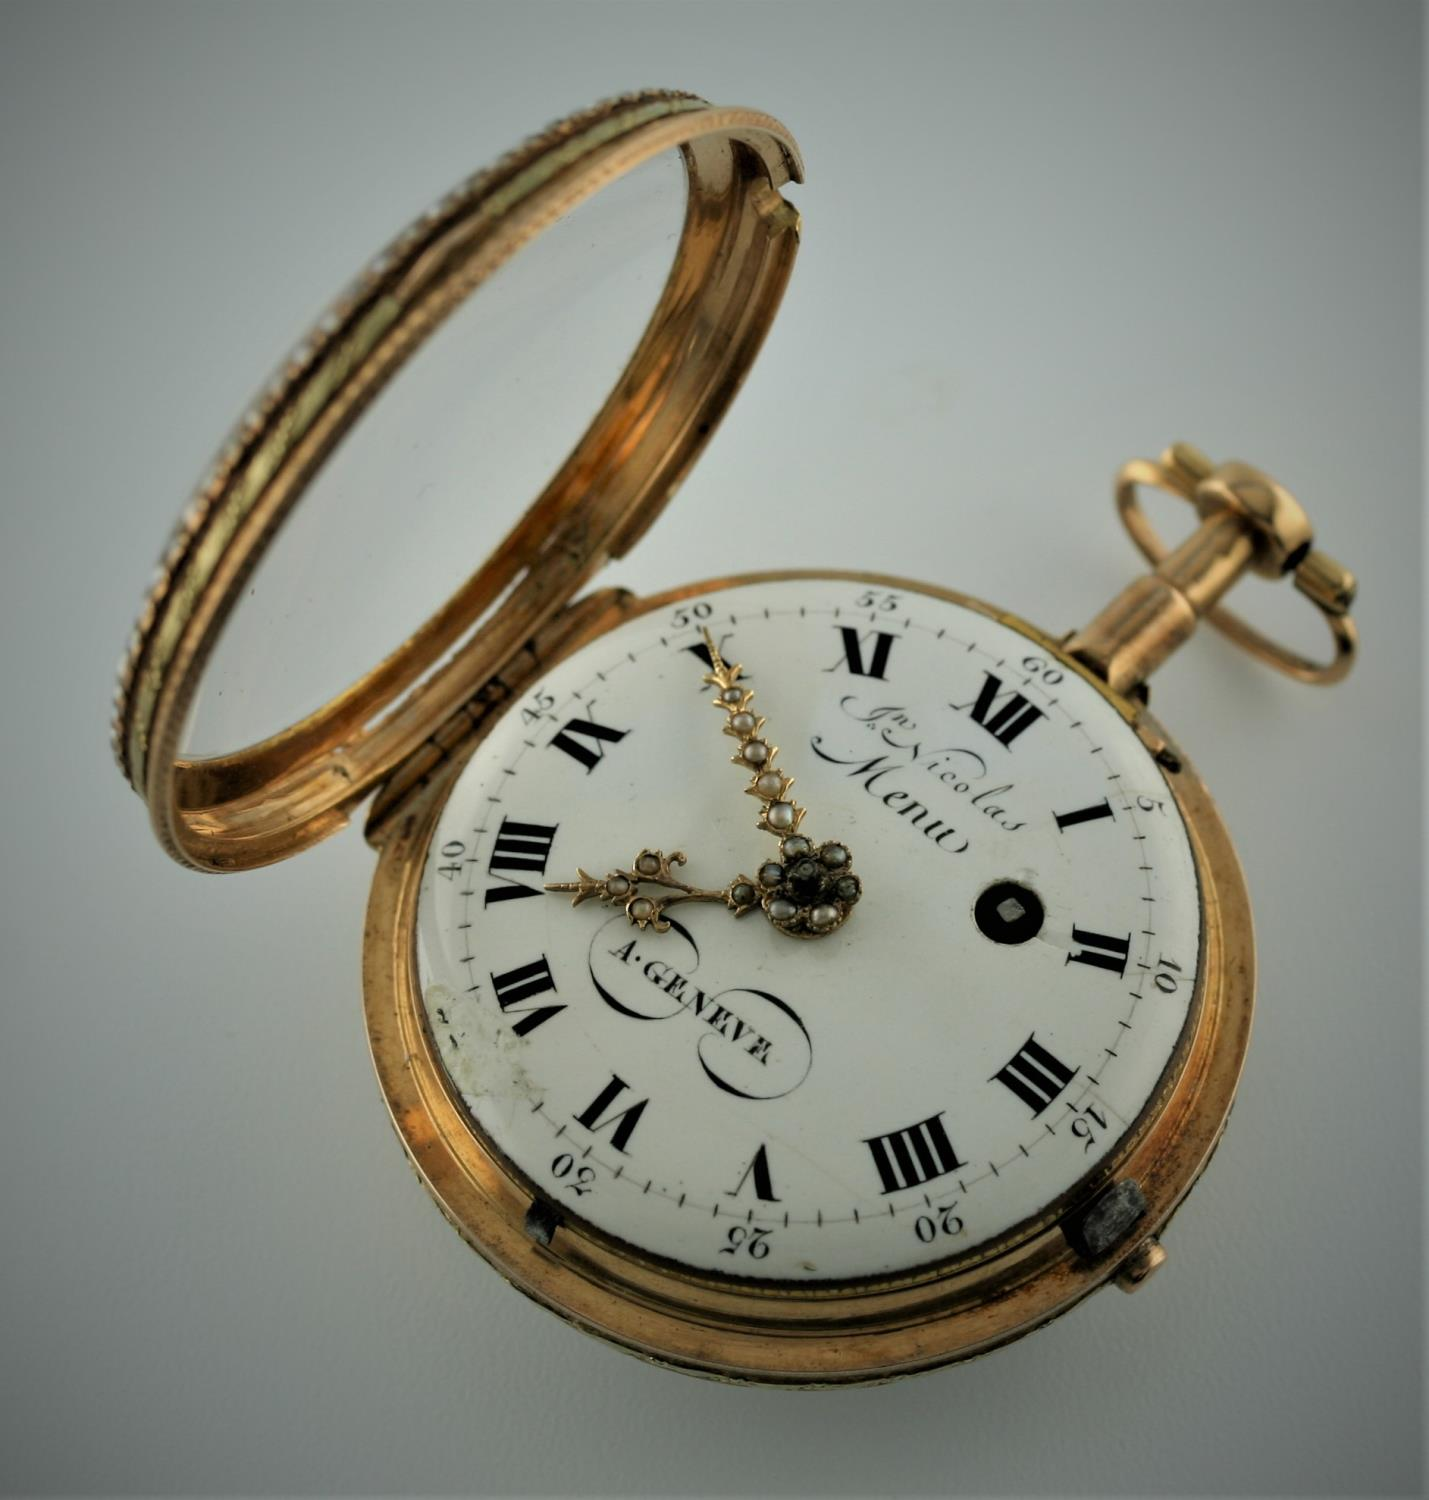 A SWISS LATE 18TH CENTURY PAIR CASED POCKET WATCH BY JEAN NICOLAS MENU the signed white enamel - Image 4 of 10